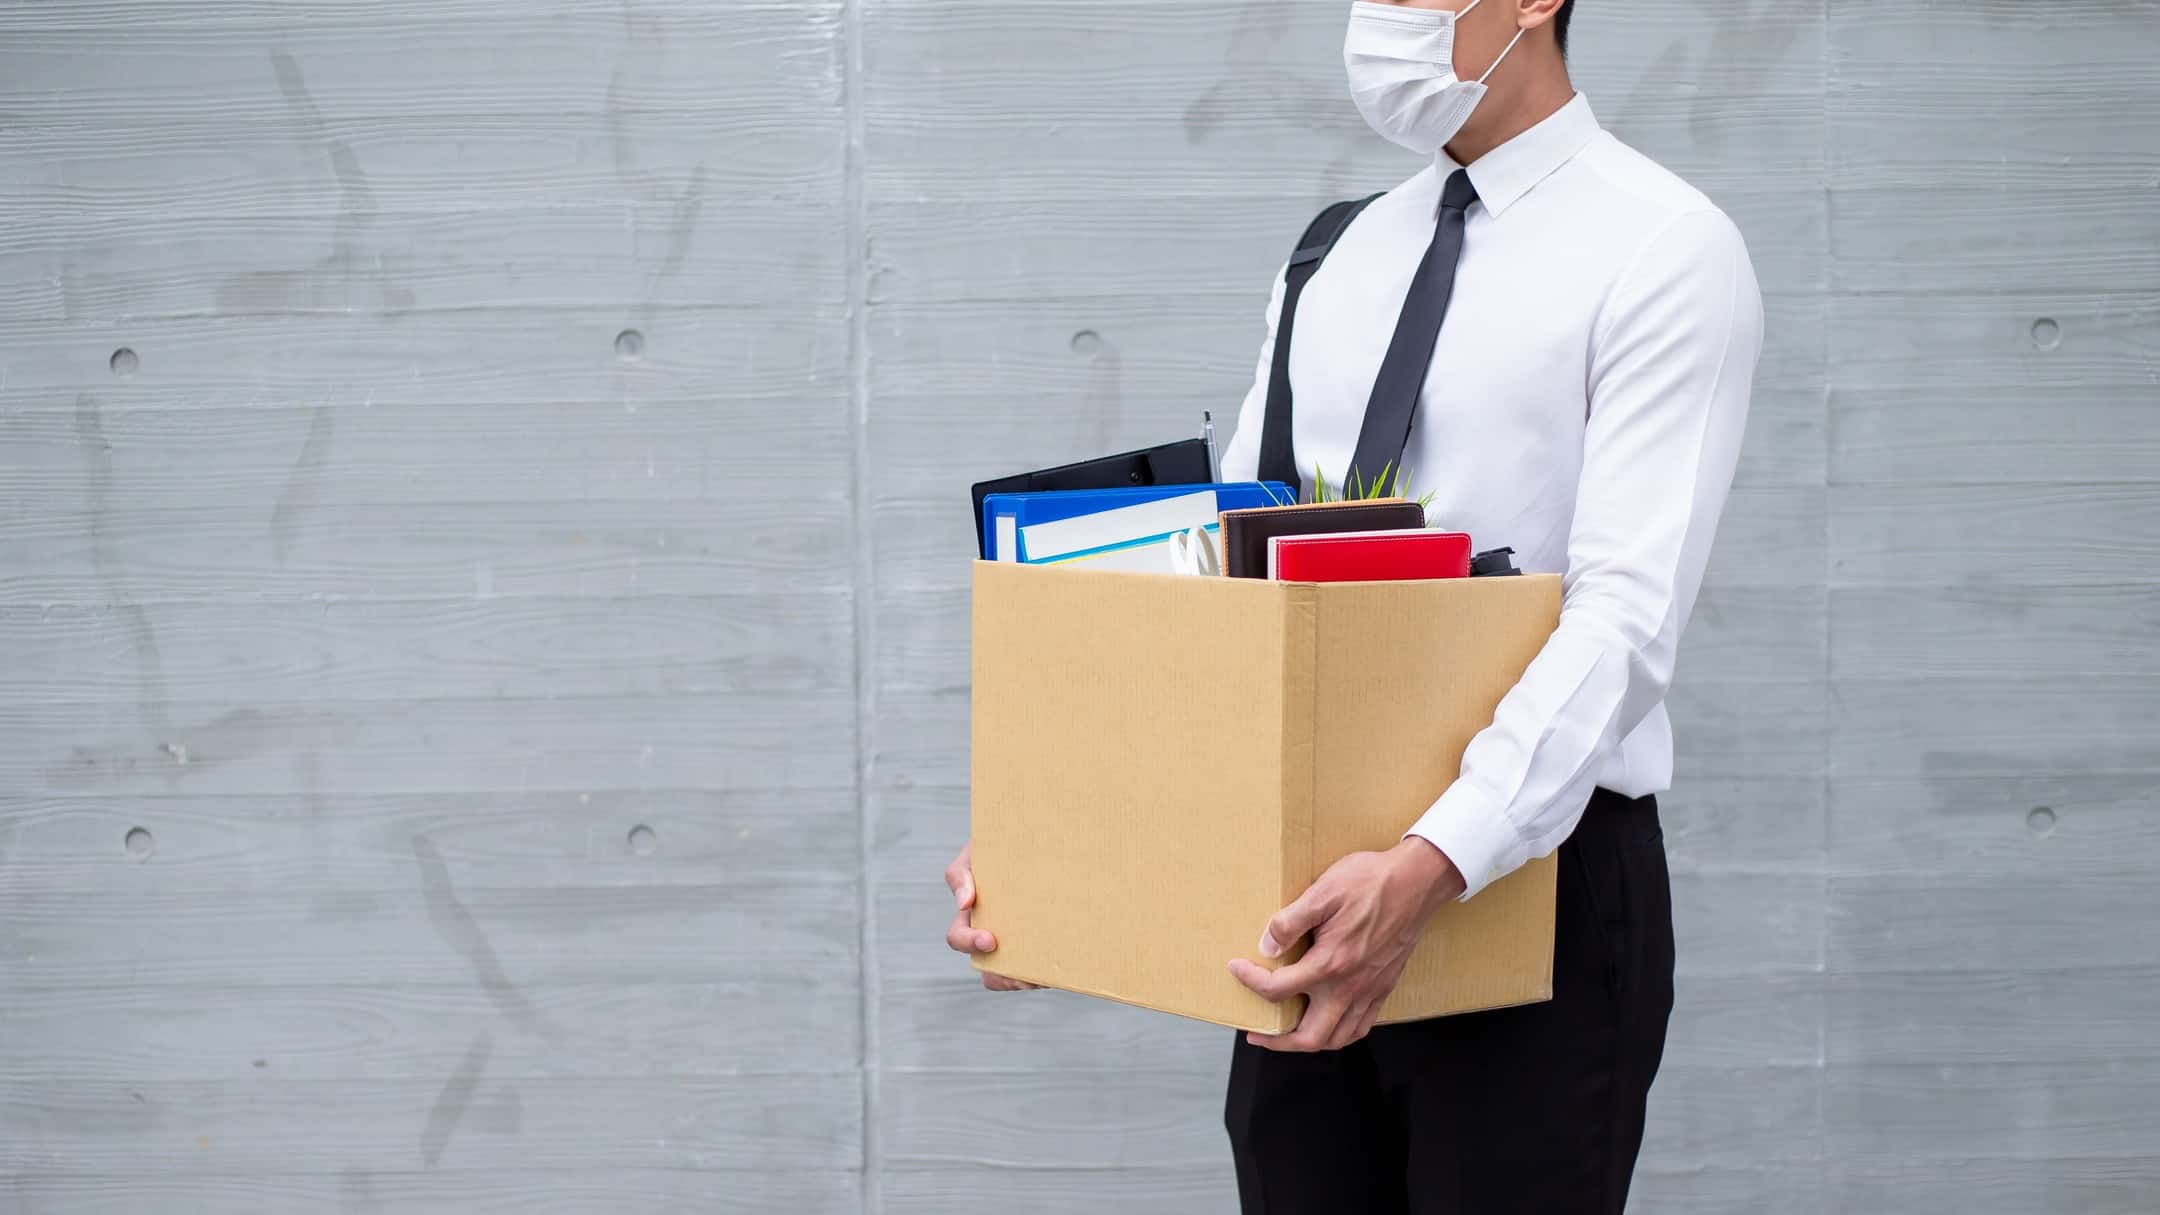 Recently unemployed man in white business shirt wearing face mask carrying box of belongings